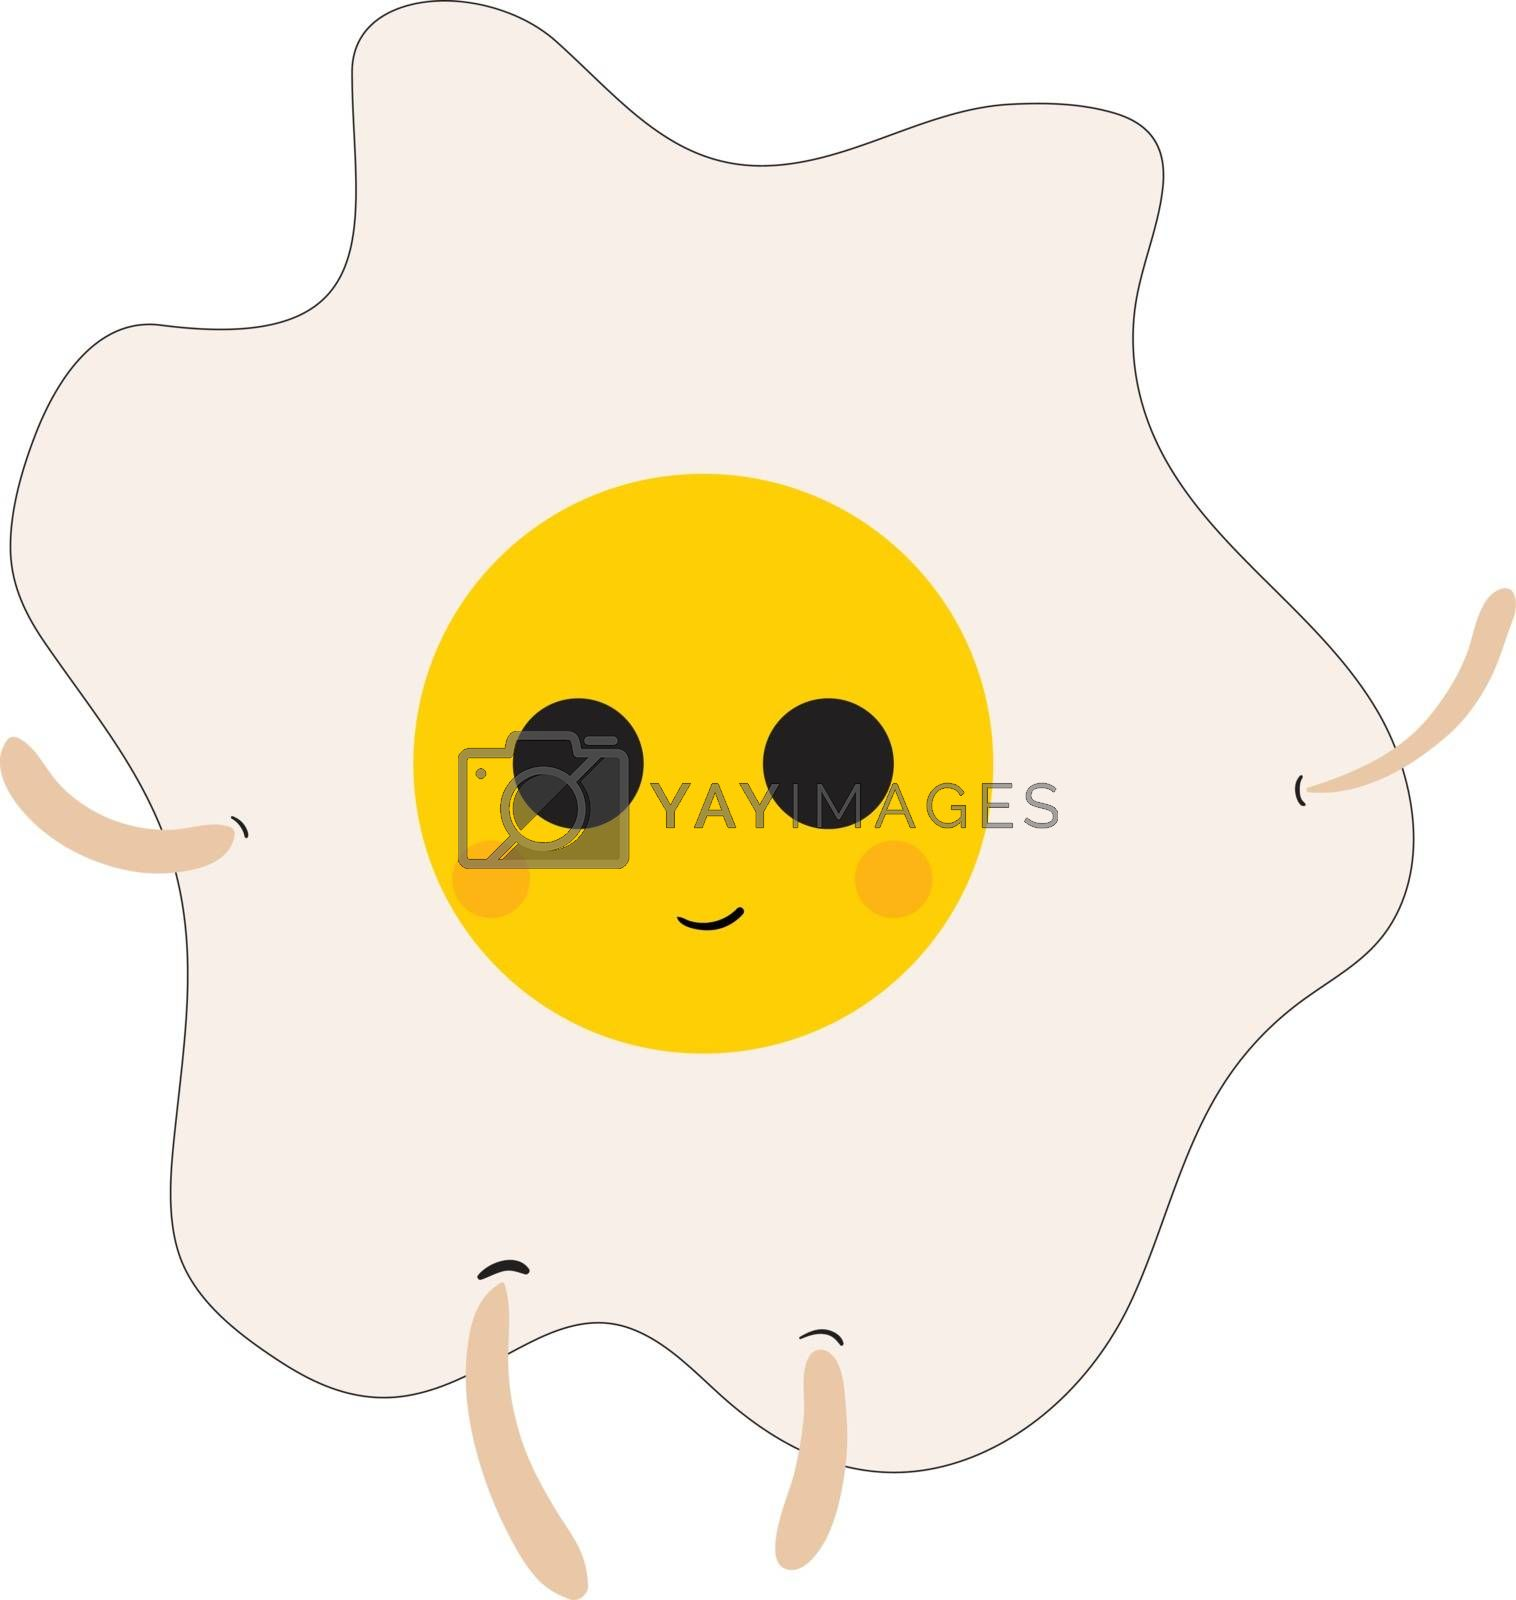 Royalty free image of Emoji of a smiling sunny side up egg vector or color illustratio by Morphart